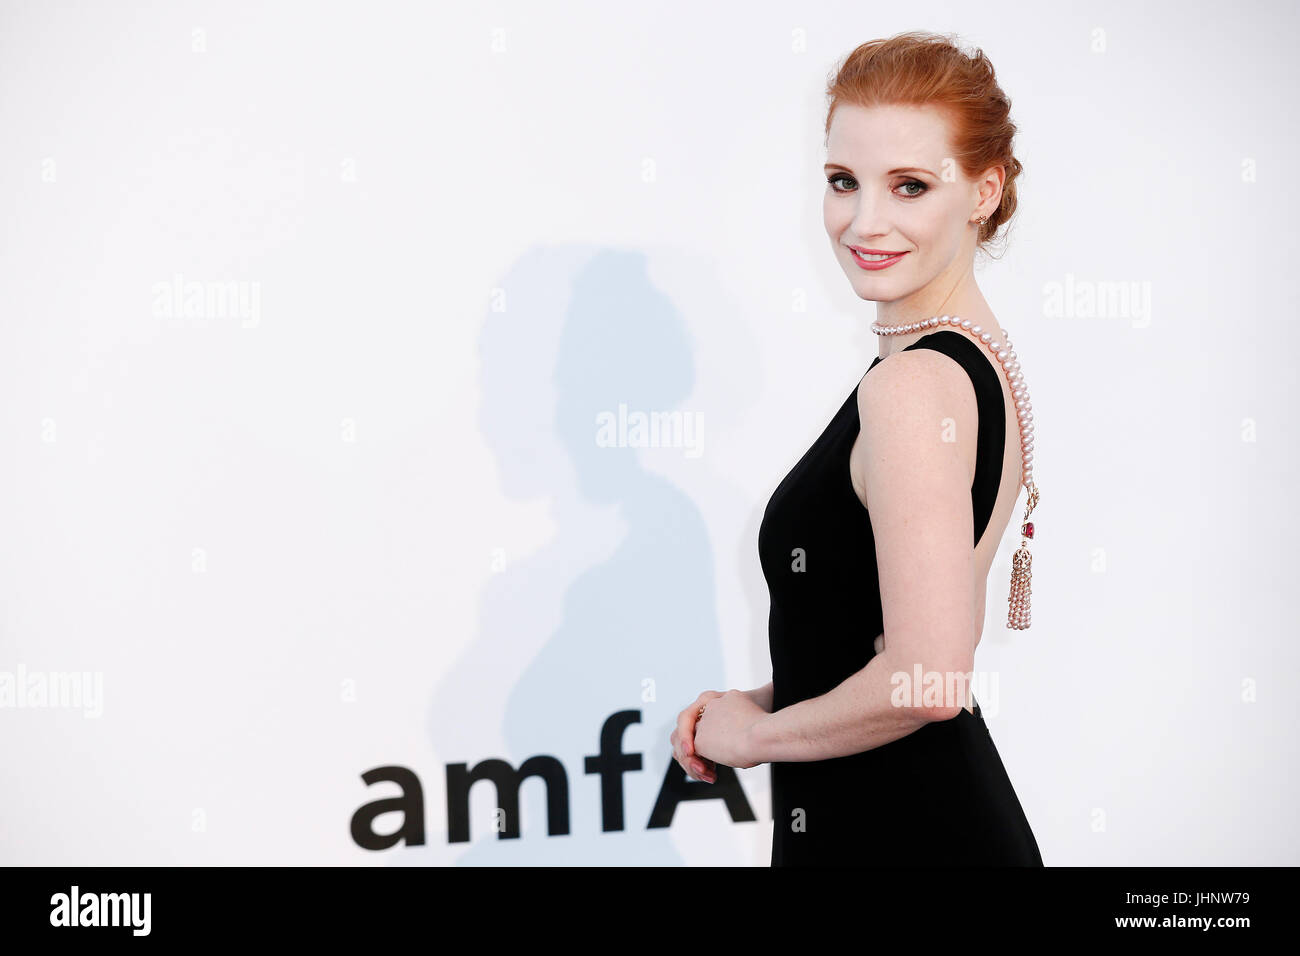 CAP D'ANTIBES, FRANCE - MAY 25: Jessica Chastain arrives at the amfAR Gala Cannes 2017 at Hotel du Cap-Eden-Roc Stock Photo